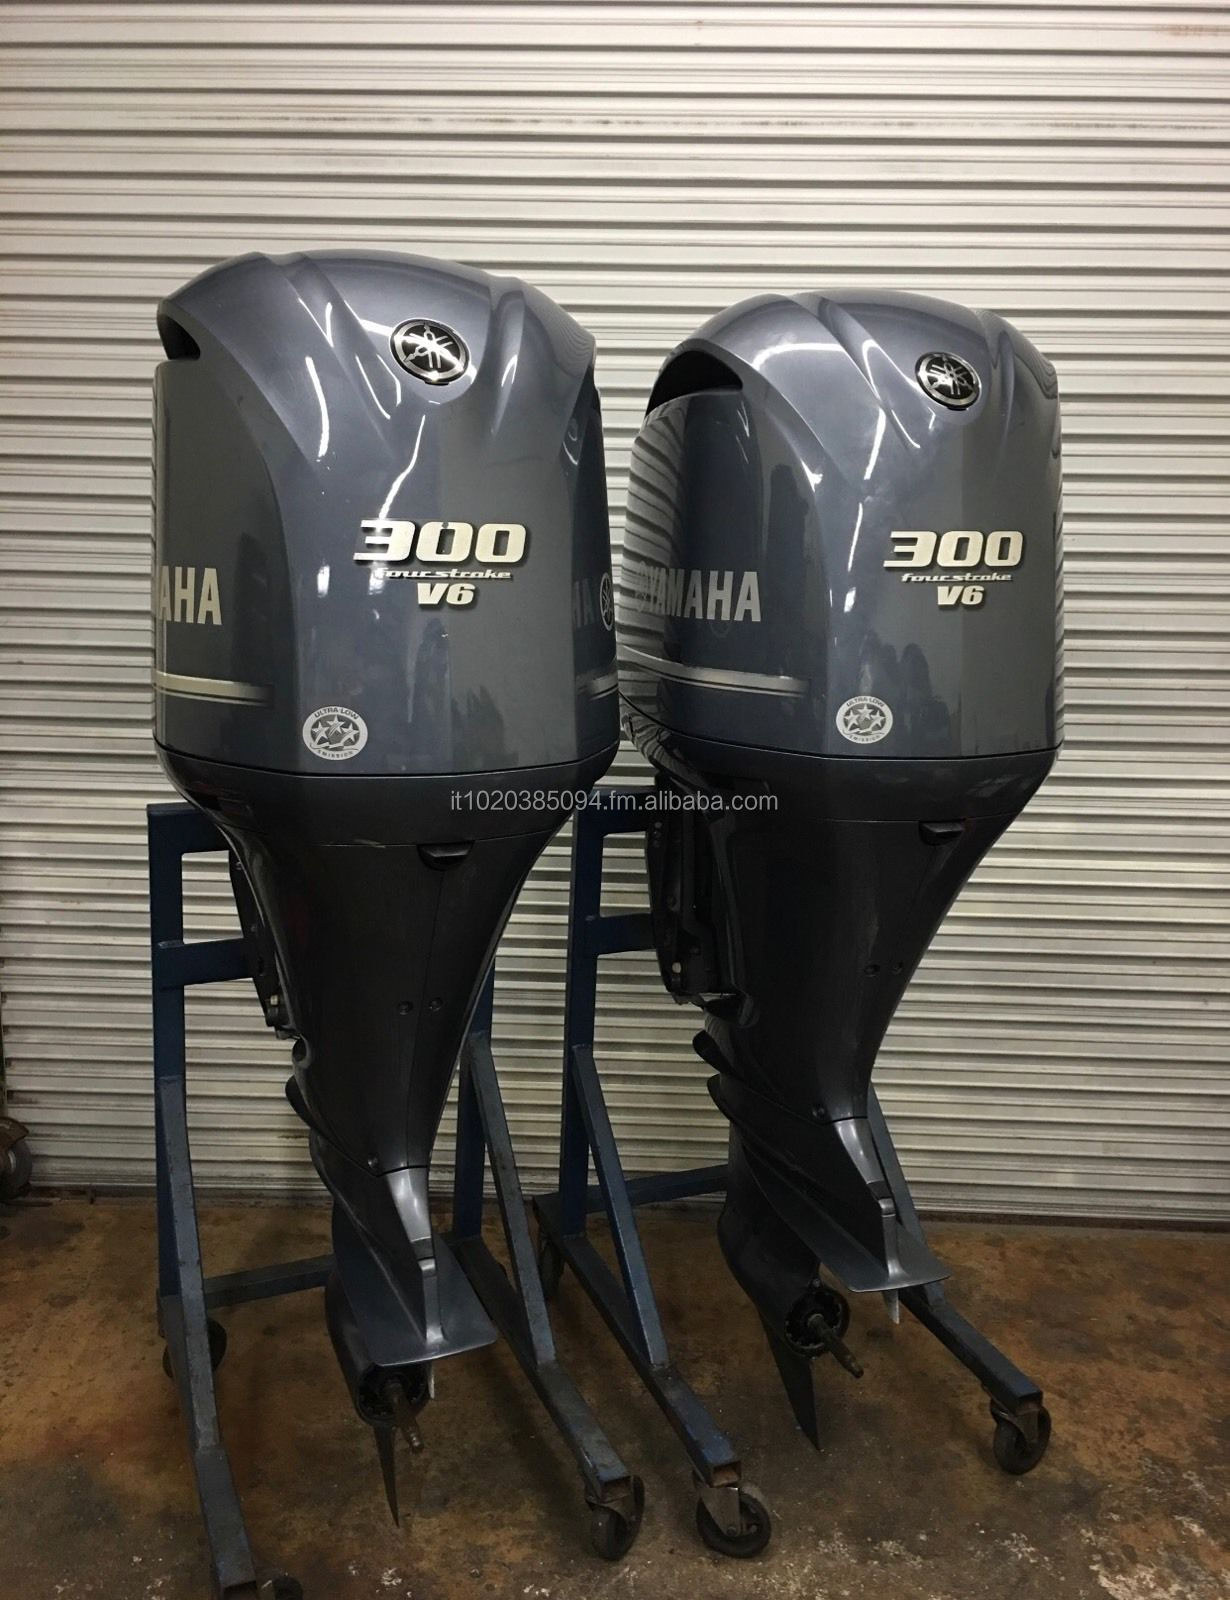 USED PAIR Y-A-M-A-H-A 300 HP 4 STROKE OUT BOARD MOTOR